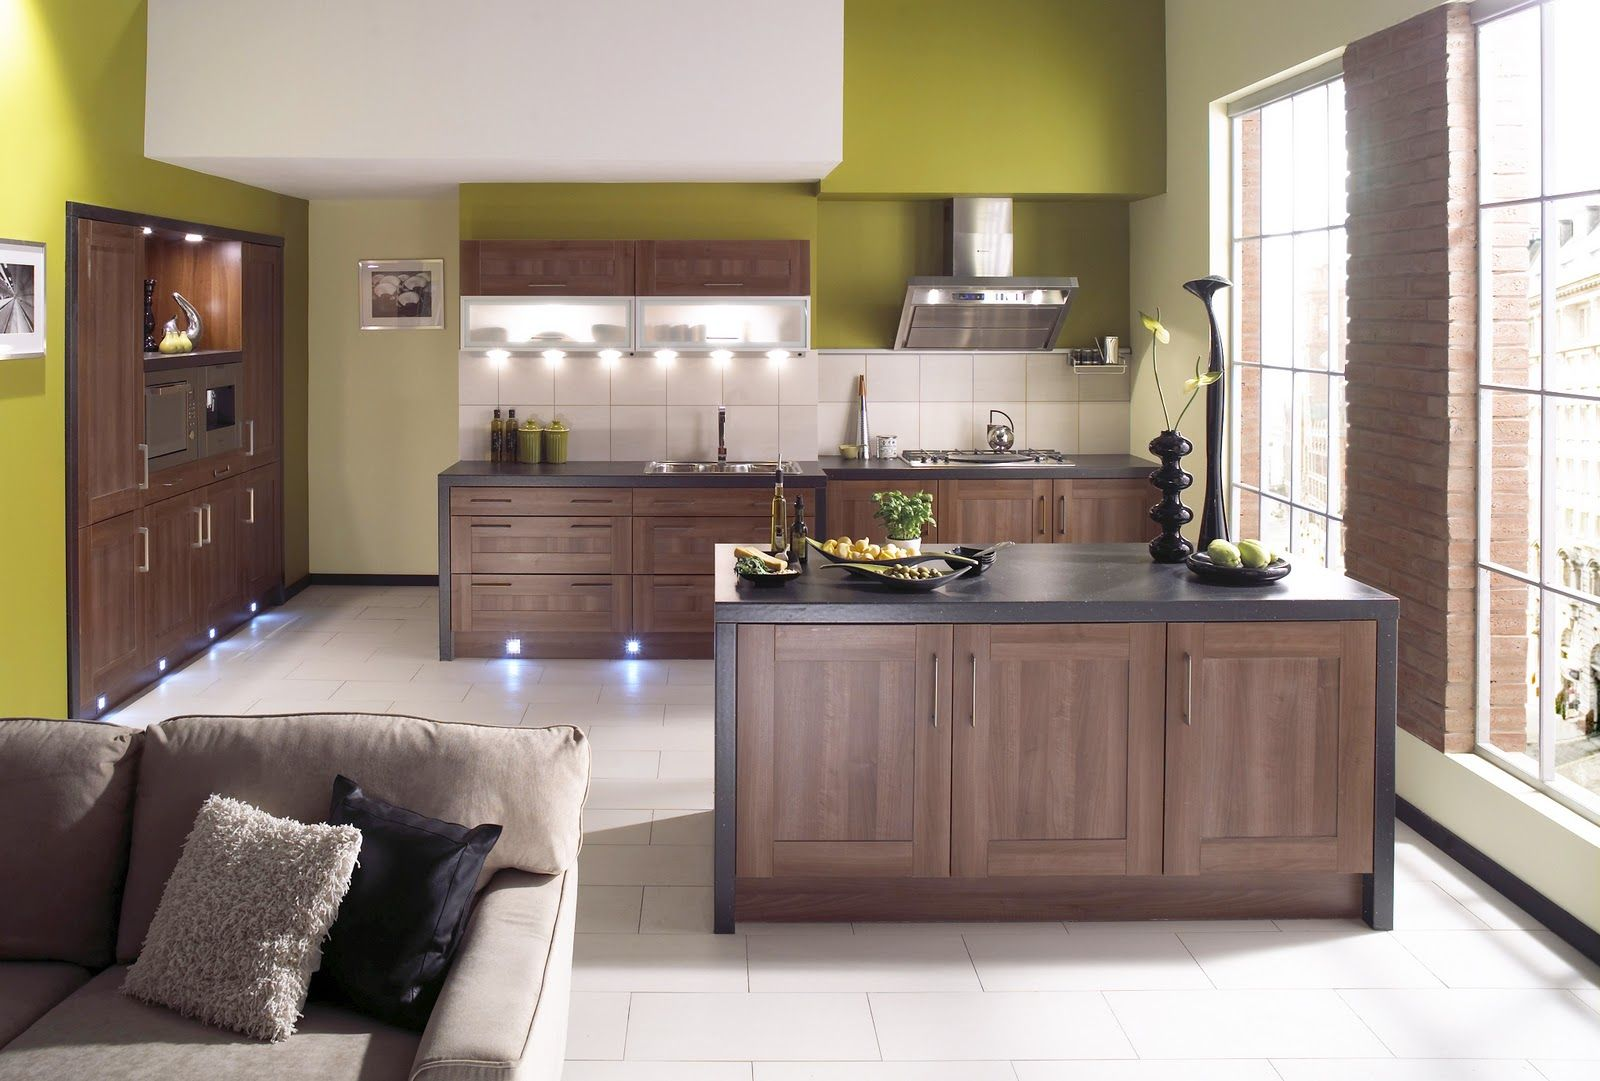 Green And Brown Kitchen Ideas Part - 15: Here You Will Find 40 Stupendous Kitchen Island Ideas That Absolutely Rock.  From Modern To Traditional, Minimalist Designs, But Also Some Rich In Color  And ...